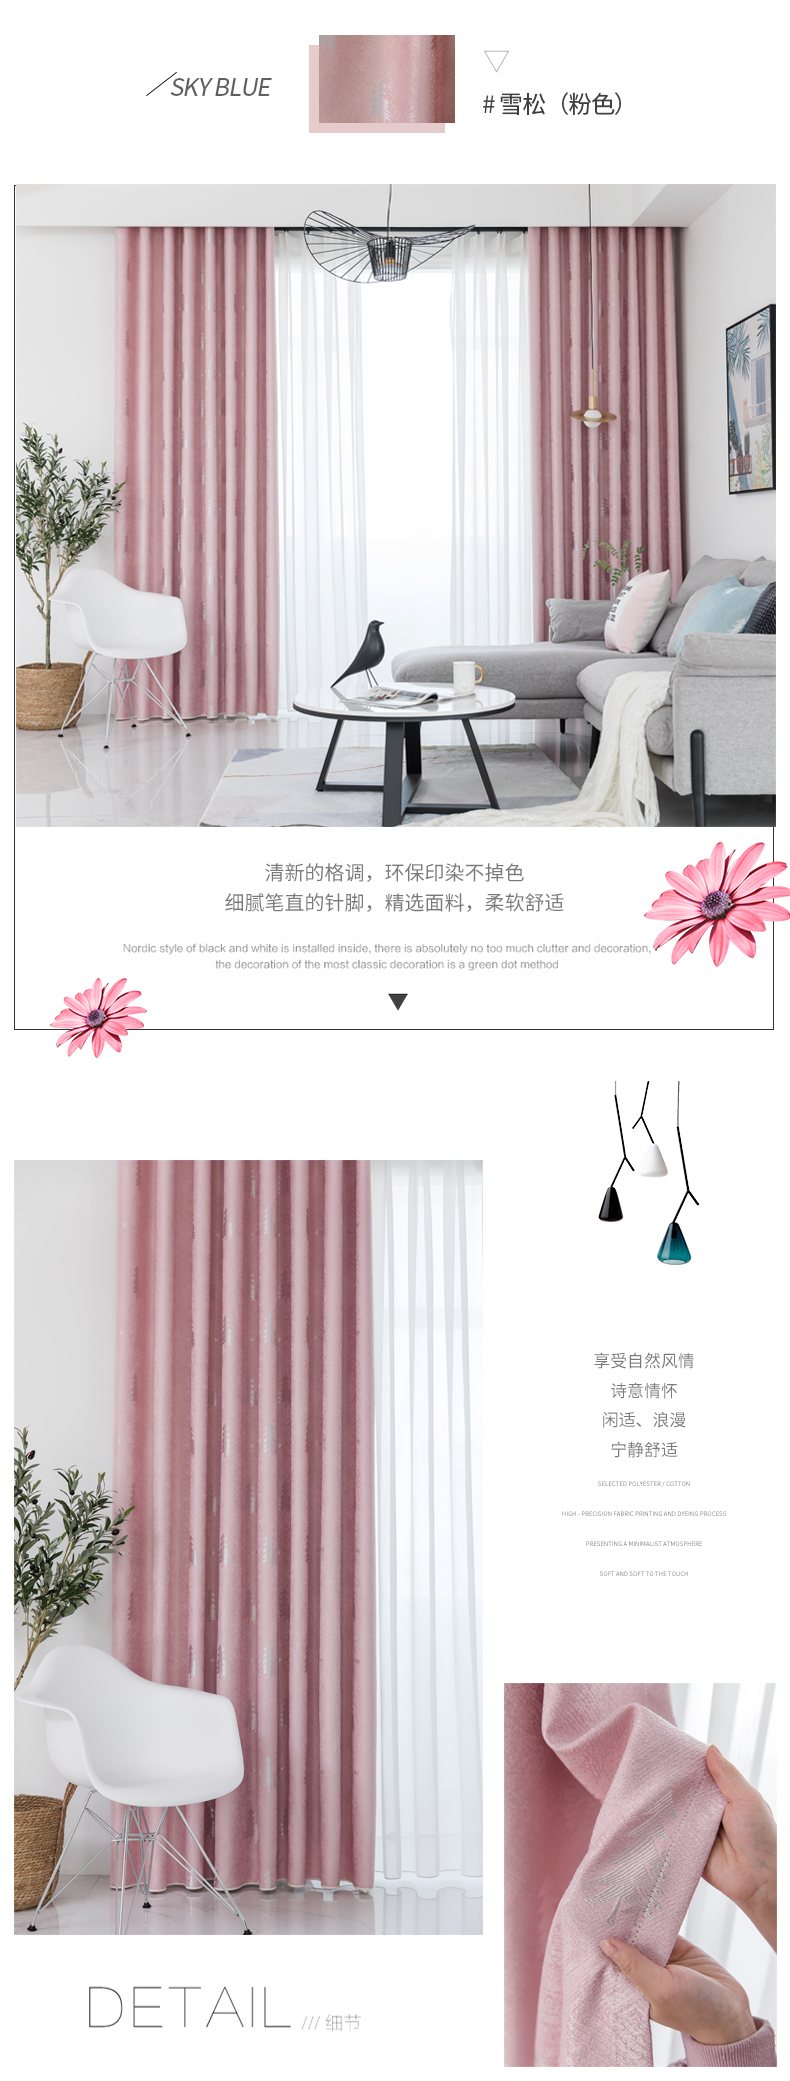 Thick Curtain Finished Product Living Room Bei Ou Gentry Full Light Shielding Bedroom Renting Bay Window Small Curtain 2020 Nian New Style Lazada